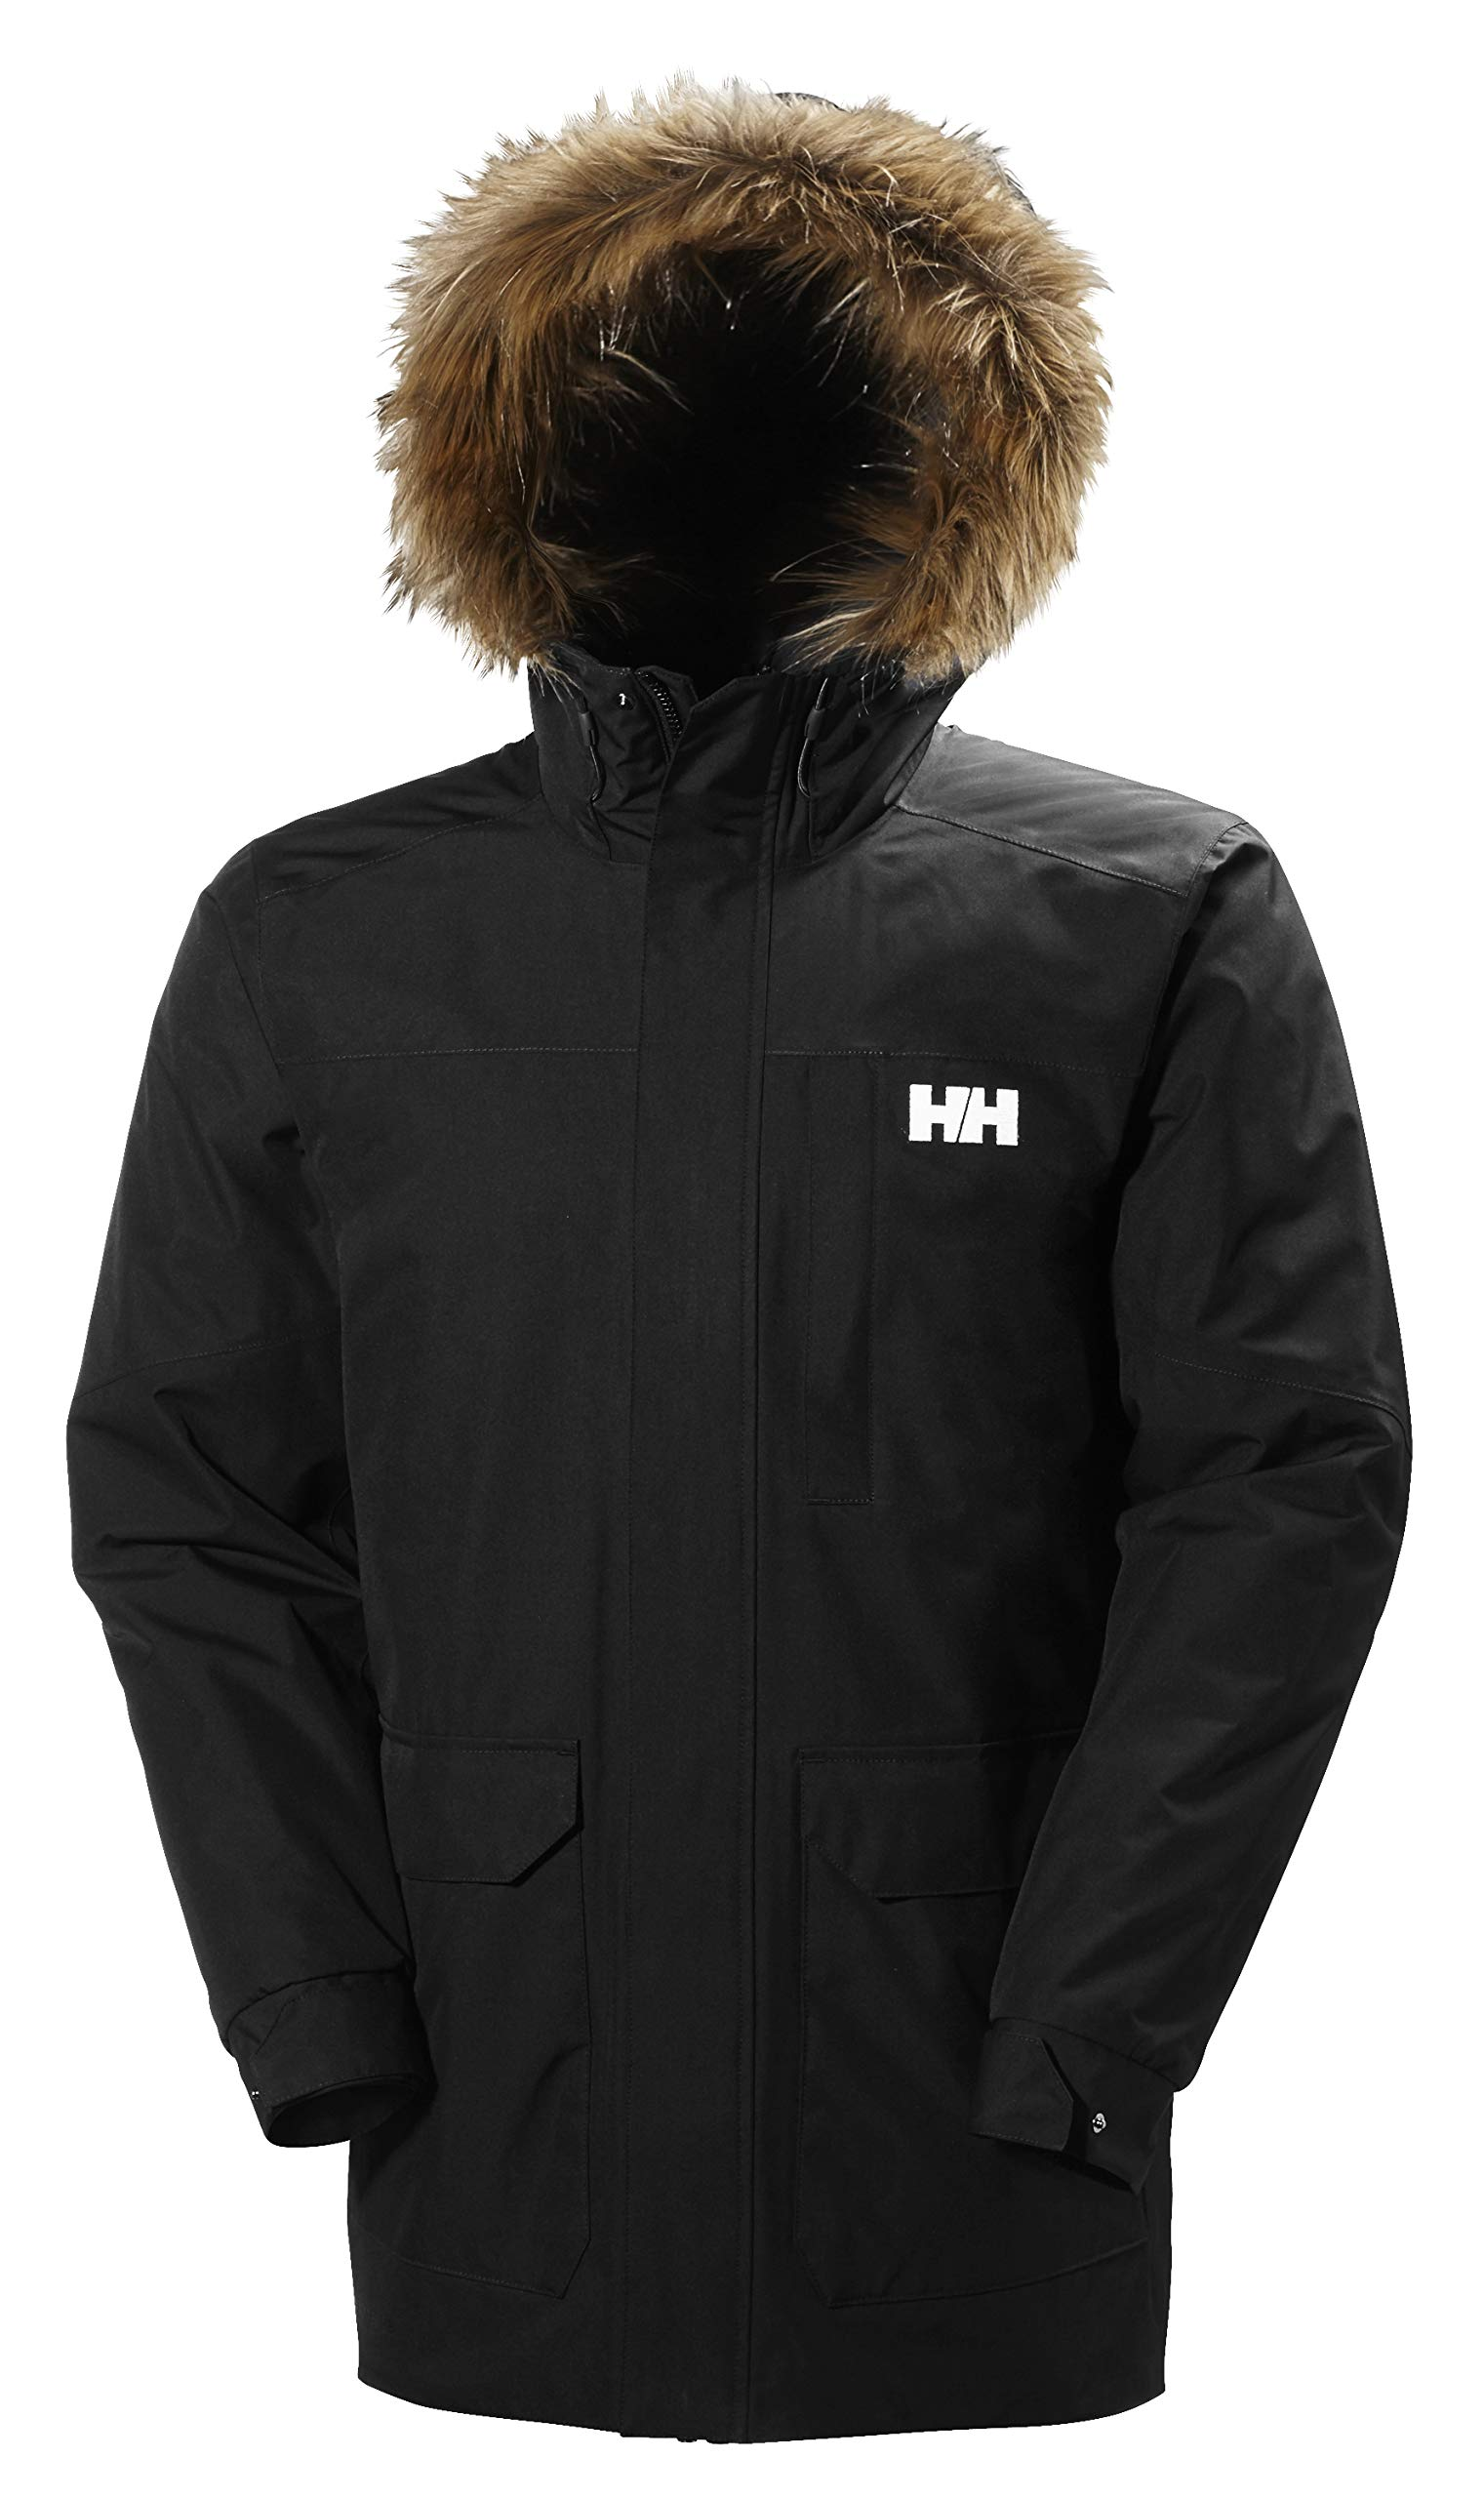 Helly Hansen Men's Dubliner Parka 100 Gram Primaloft Insulated Waterproof Windproof Breathable Rain Coat with Hood, 990 Black, 2X-Large by Helly Hansen